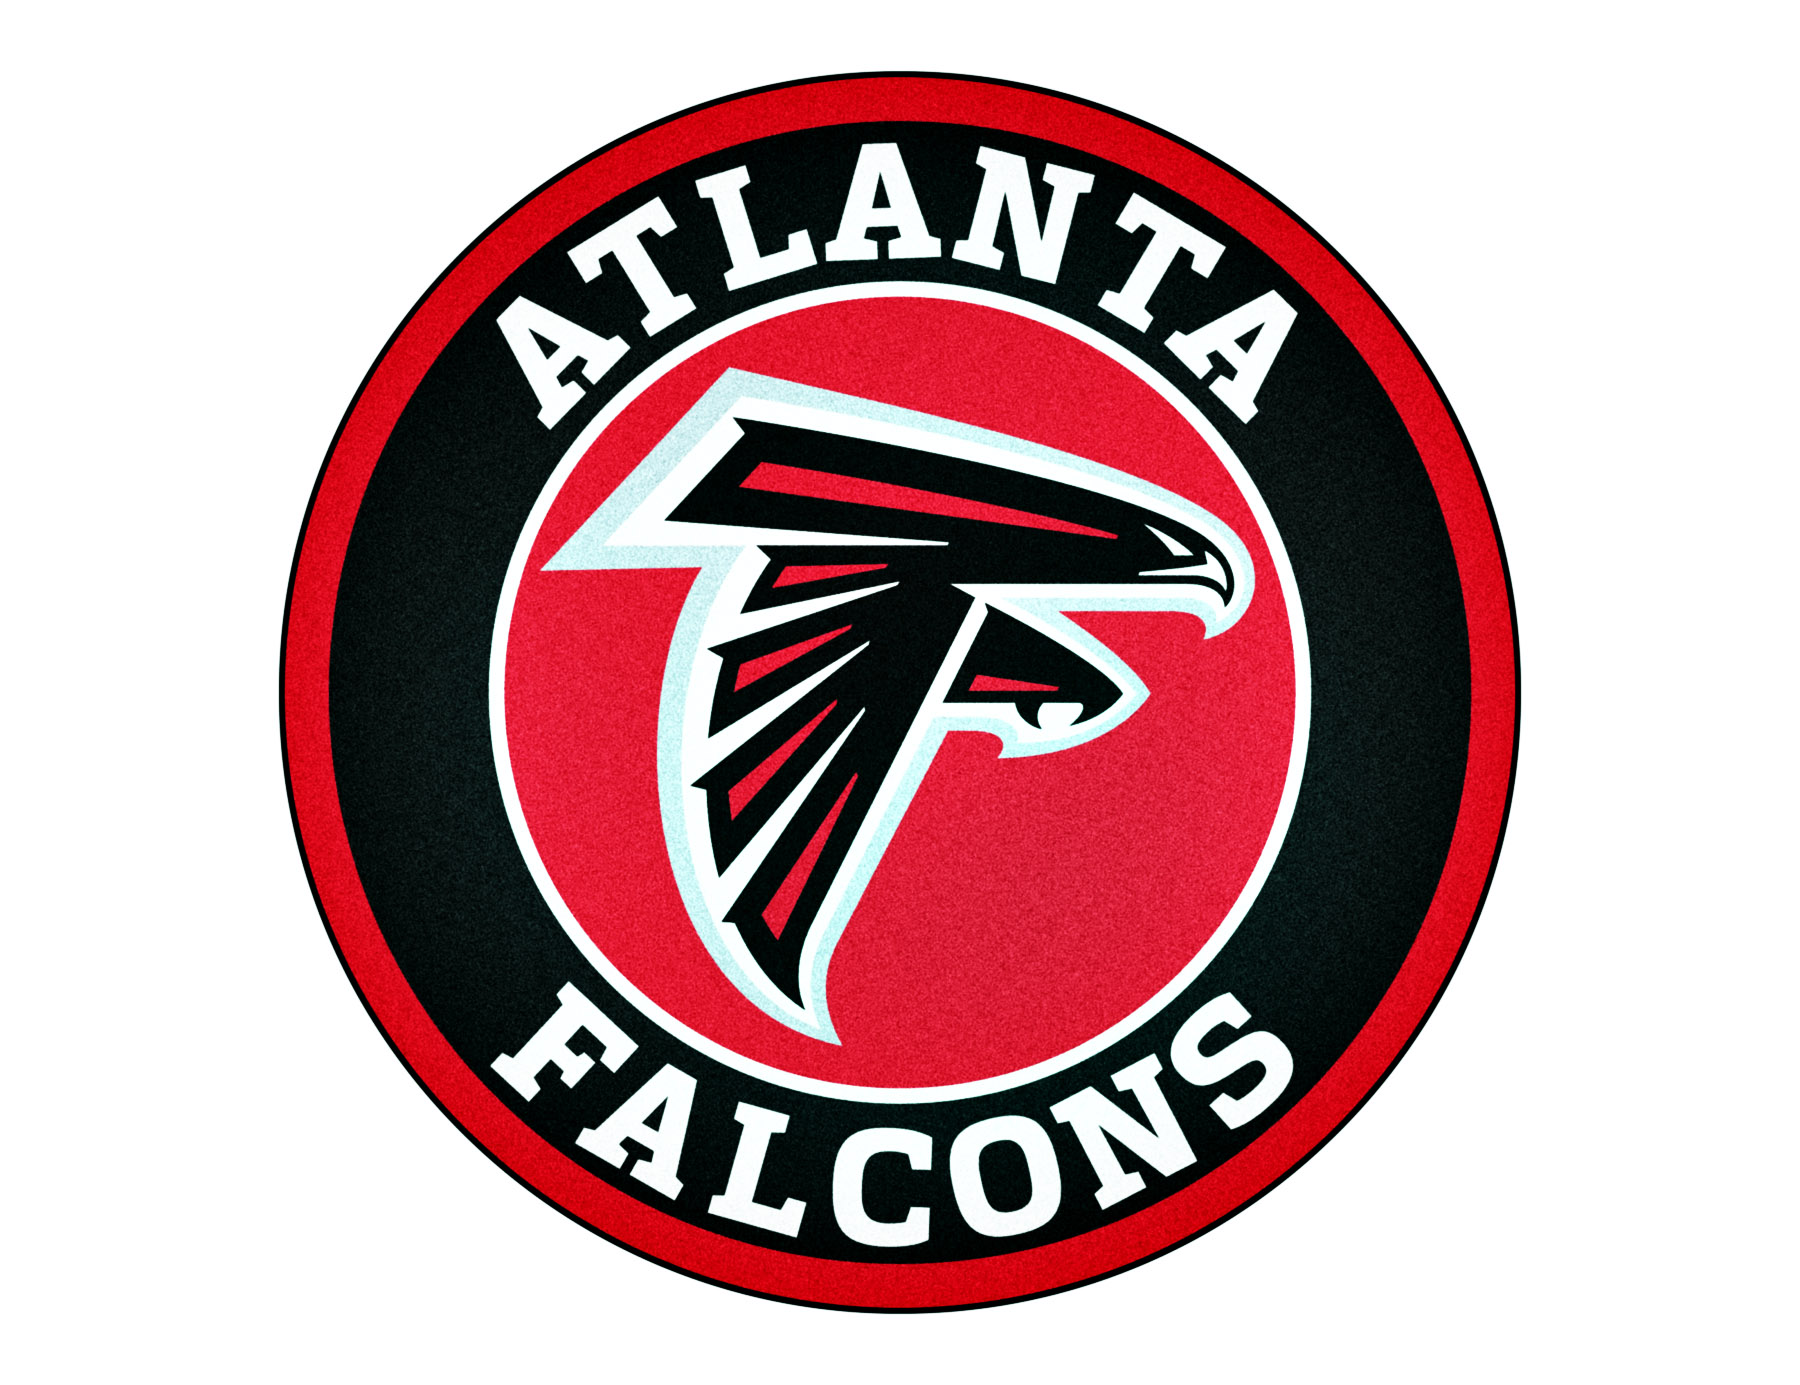 Atlanta falcons logo clipart vector free download Collection of Atlanta falcons clipart | Free download best Atlanta ... vector free download